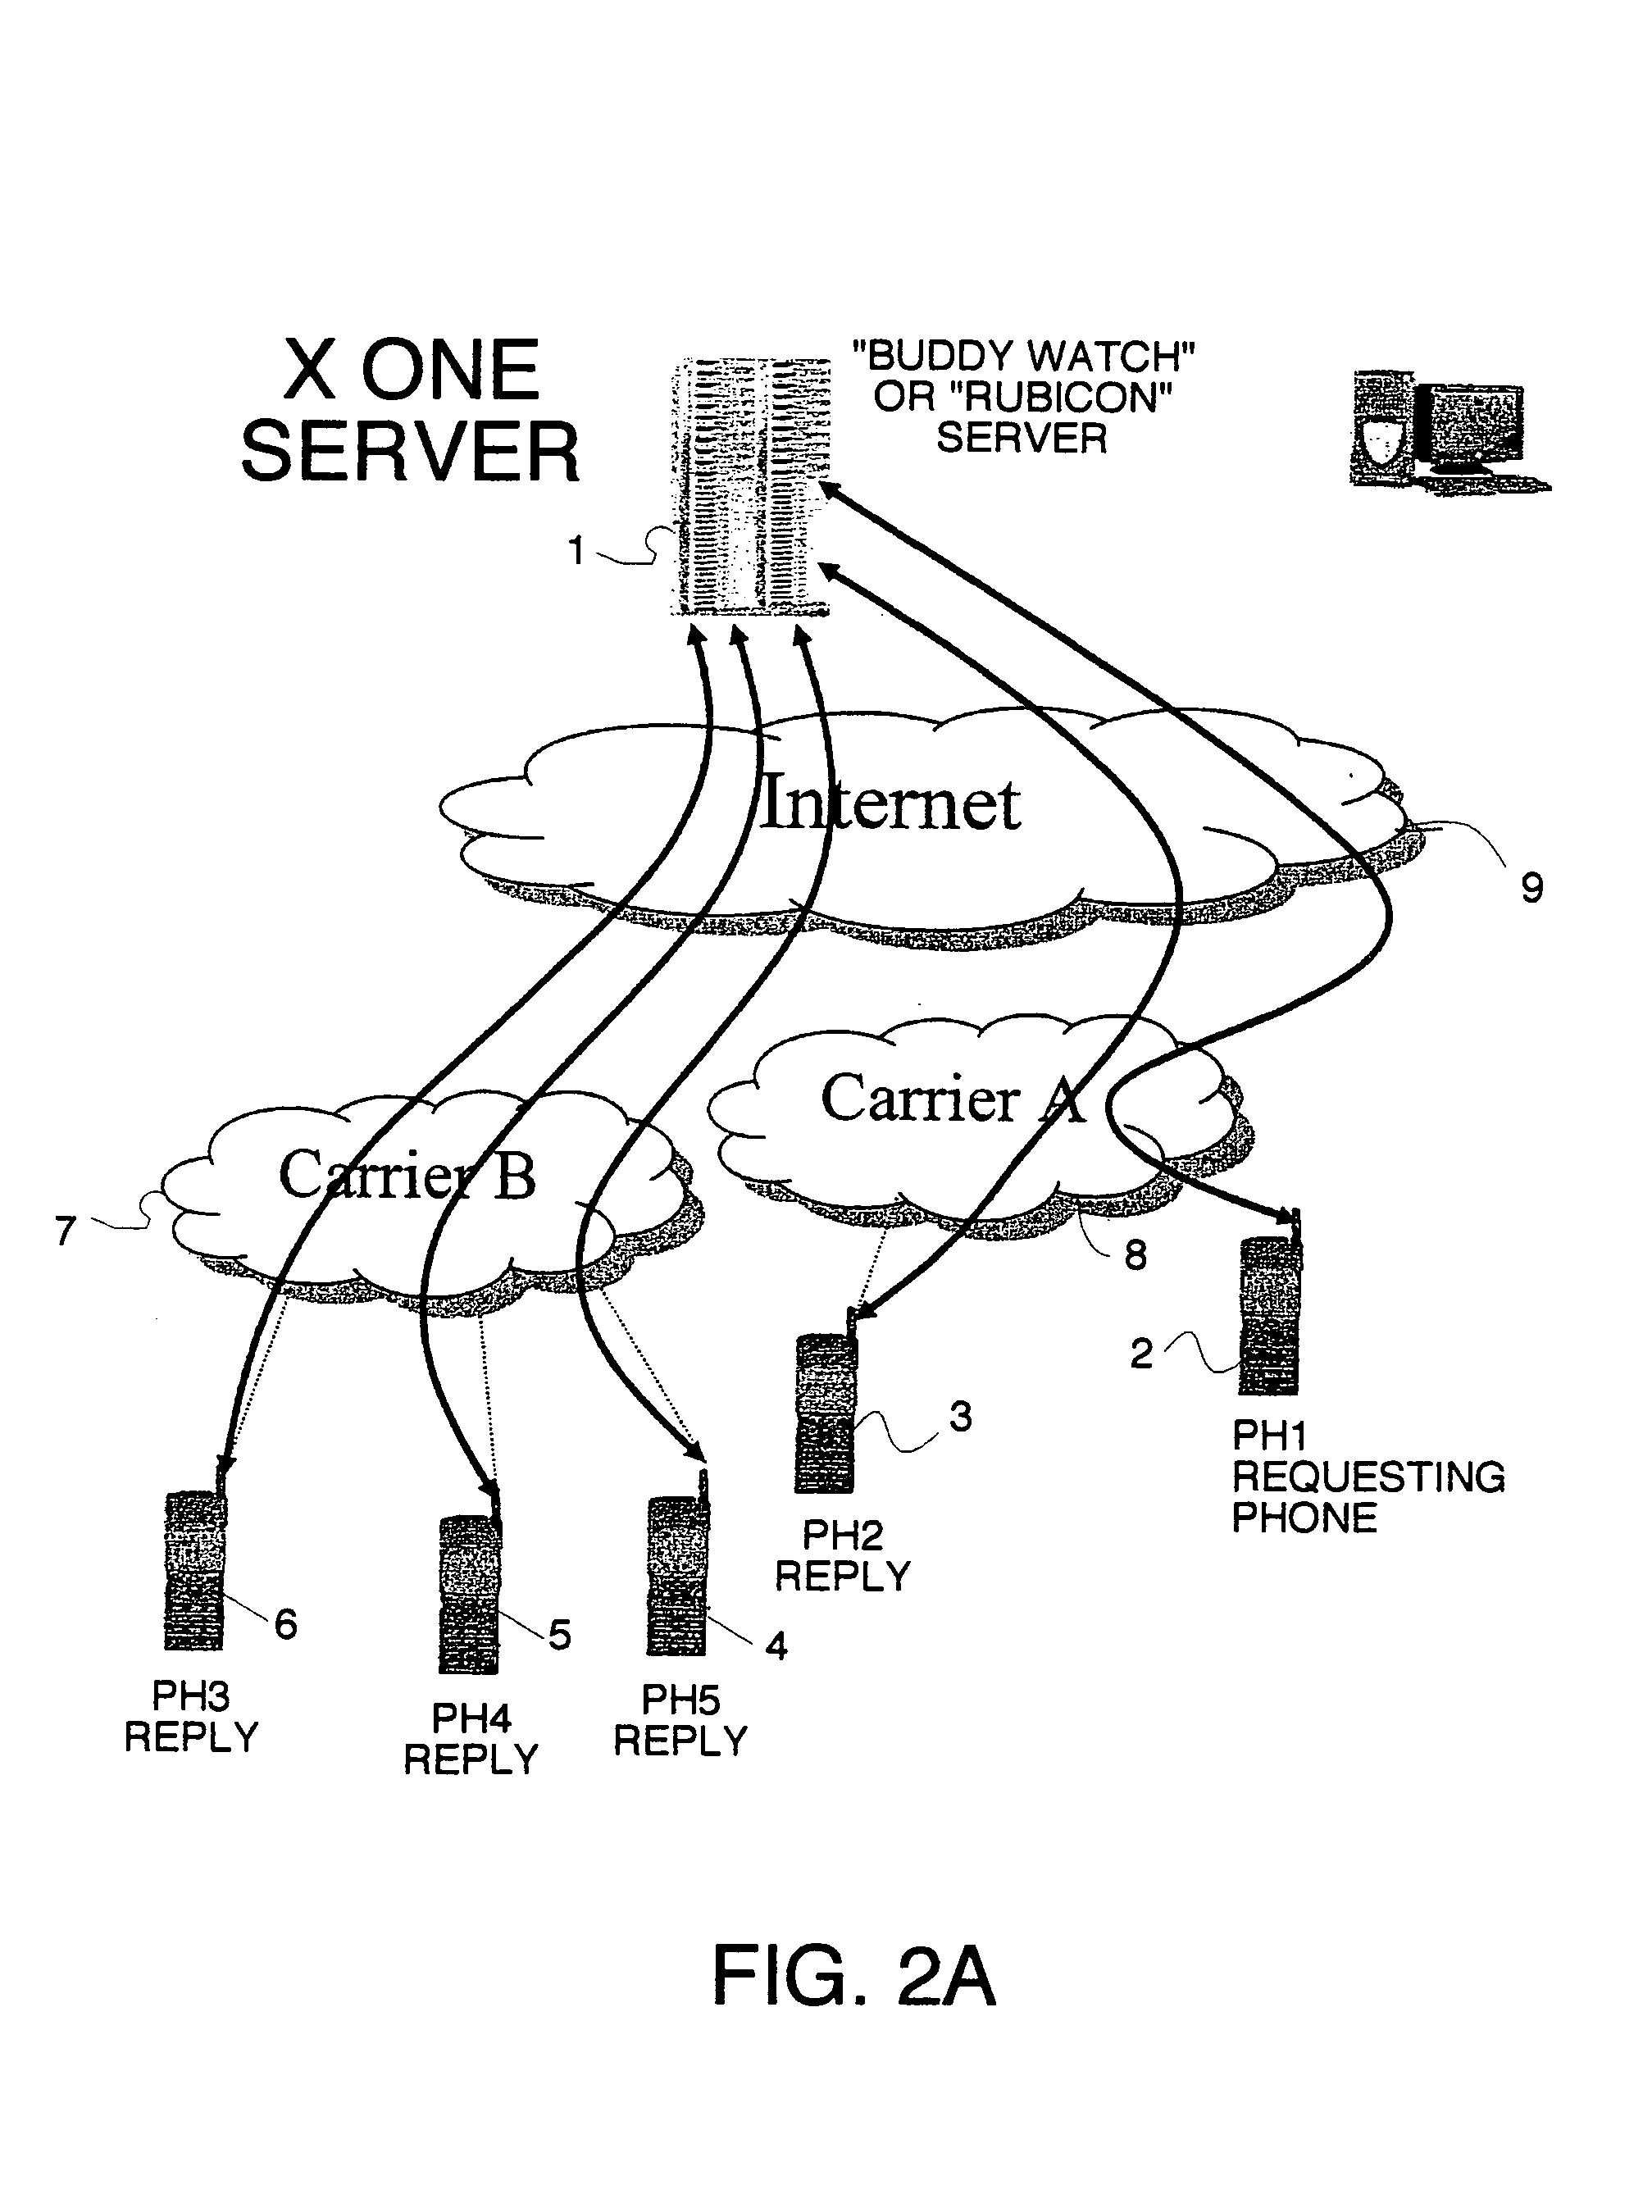 Us7353034b2 Location Sharing And Tracking Using Mobile Phones Or Network Diagram For Internetbased Servers Scenario 4 With Internet Other Wireless Devices Google Patents